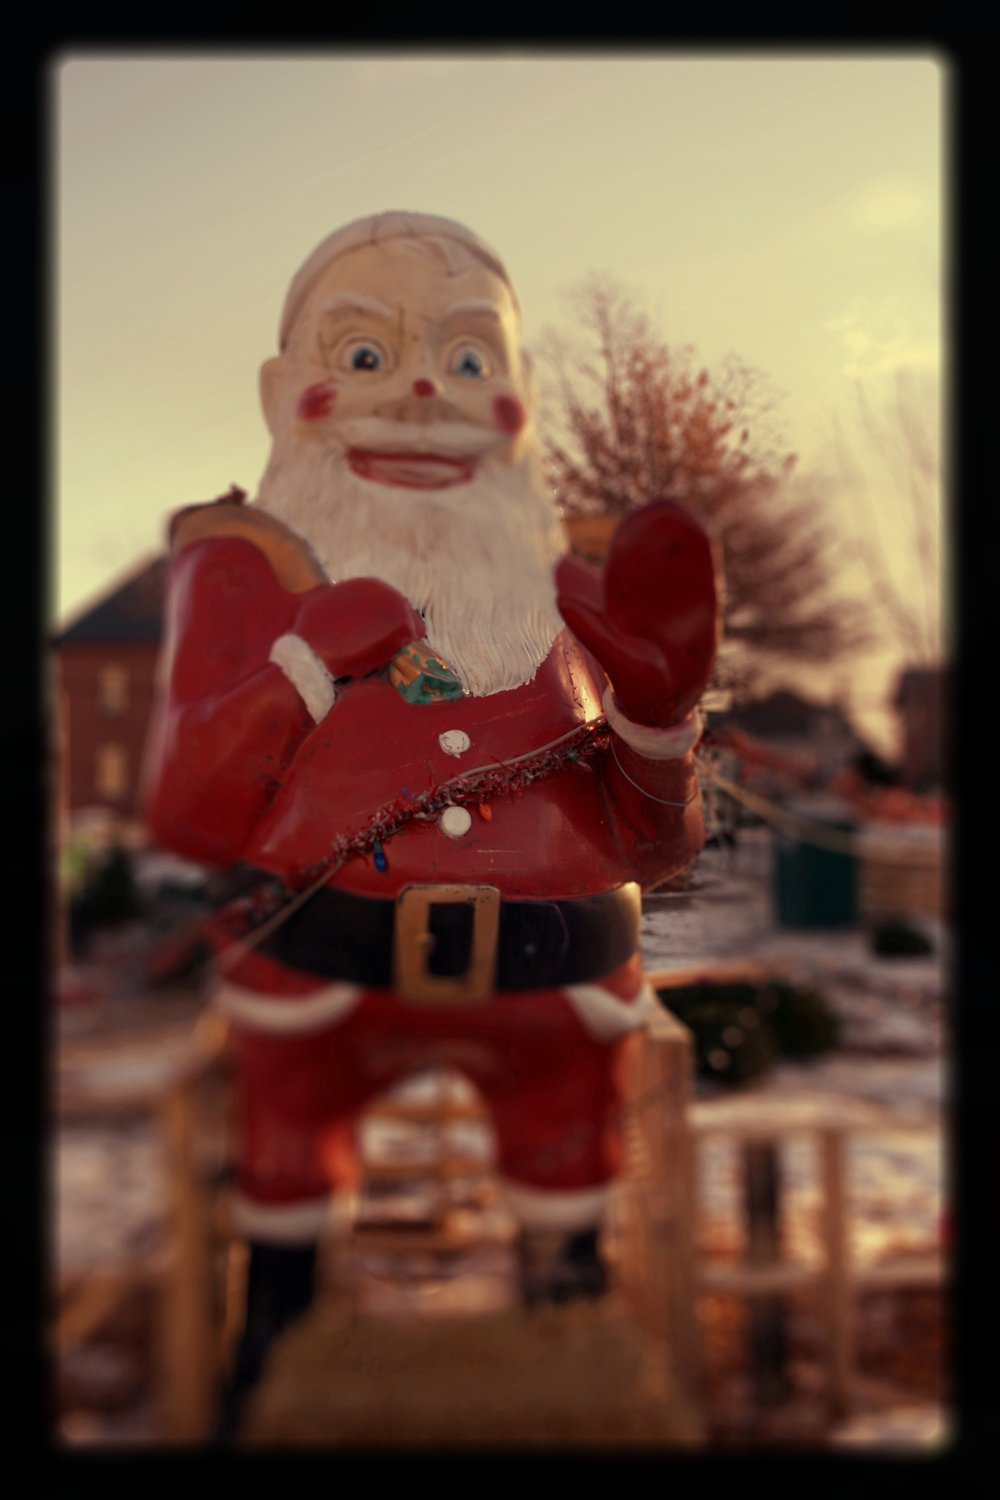 Creepy Santa on Elm Street                                        Christmas Day 2016